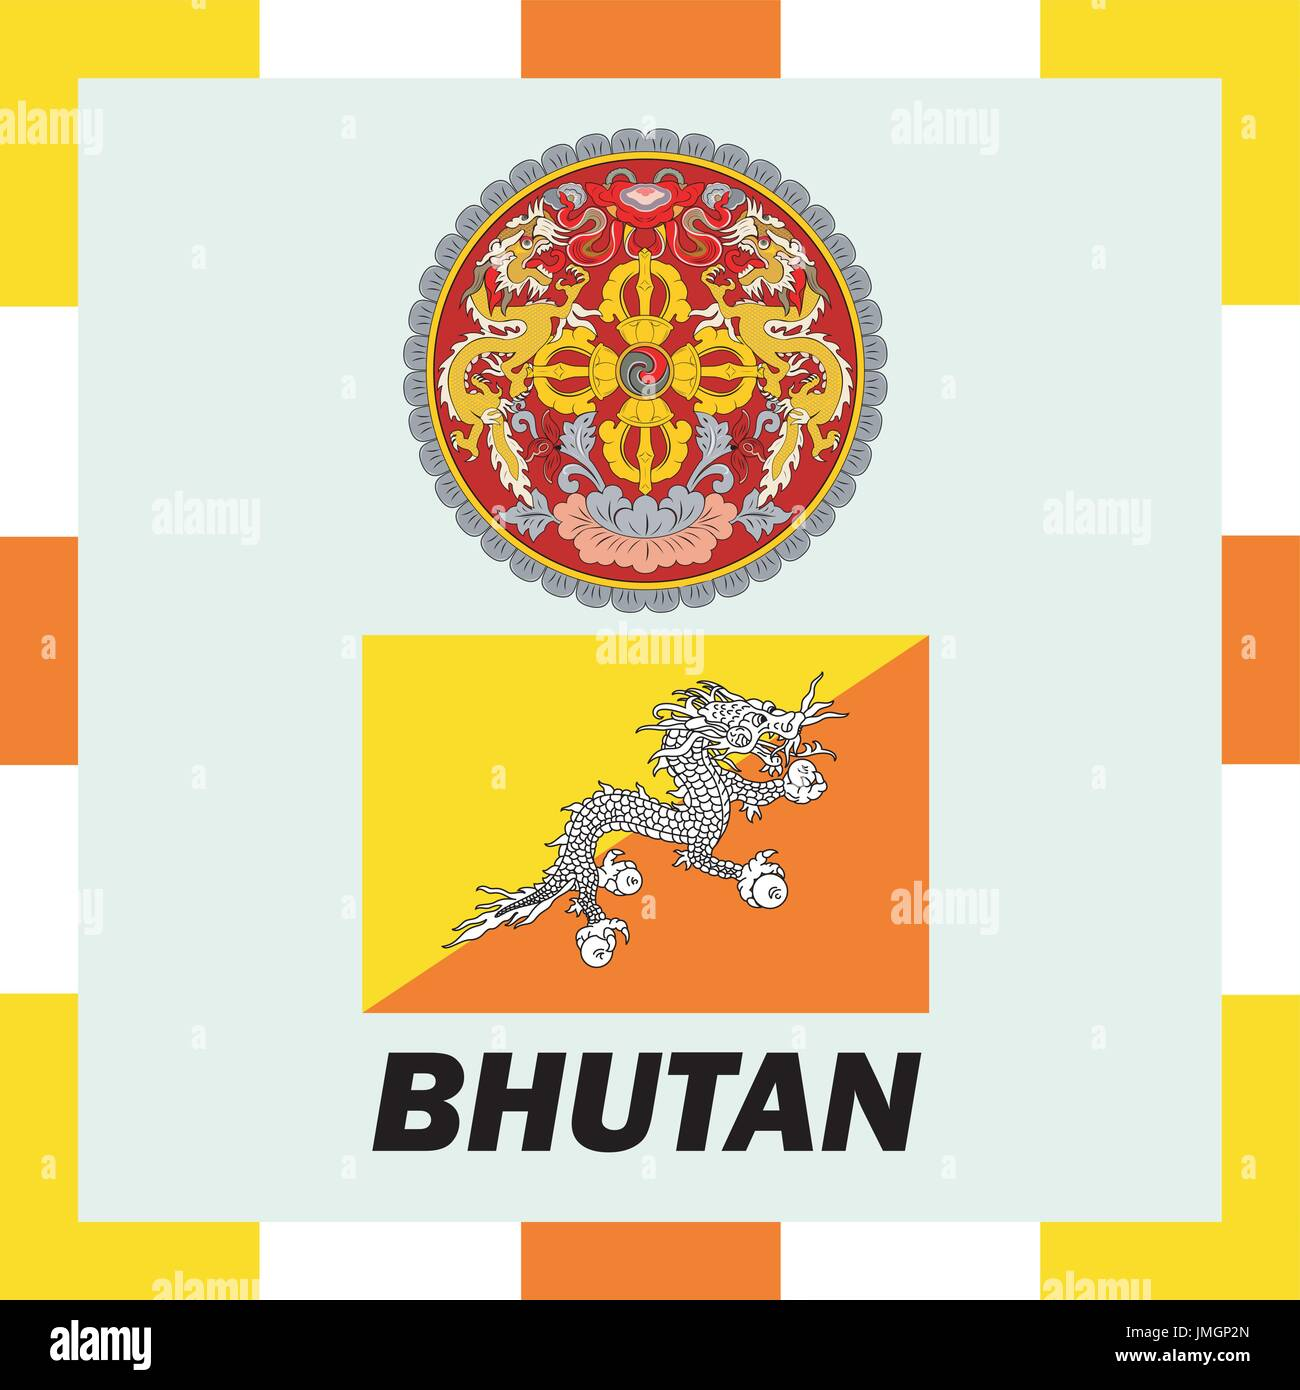 Official ensigns, flag and coat of arm of Bhutan - Stock Vector